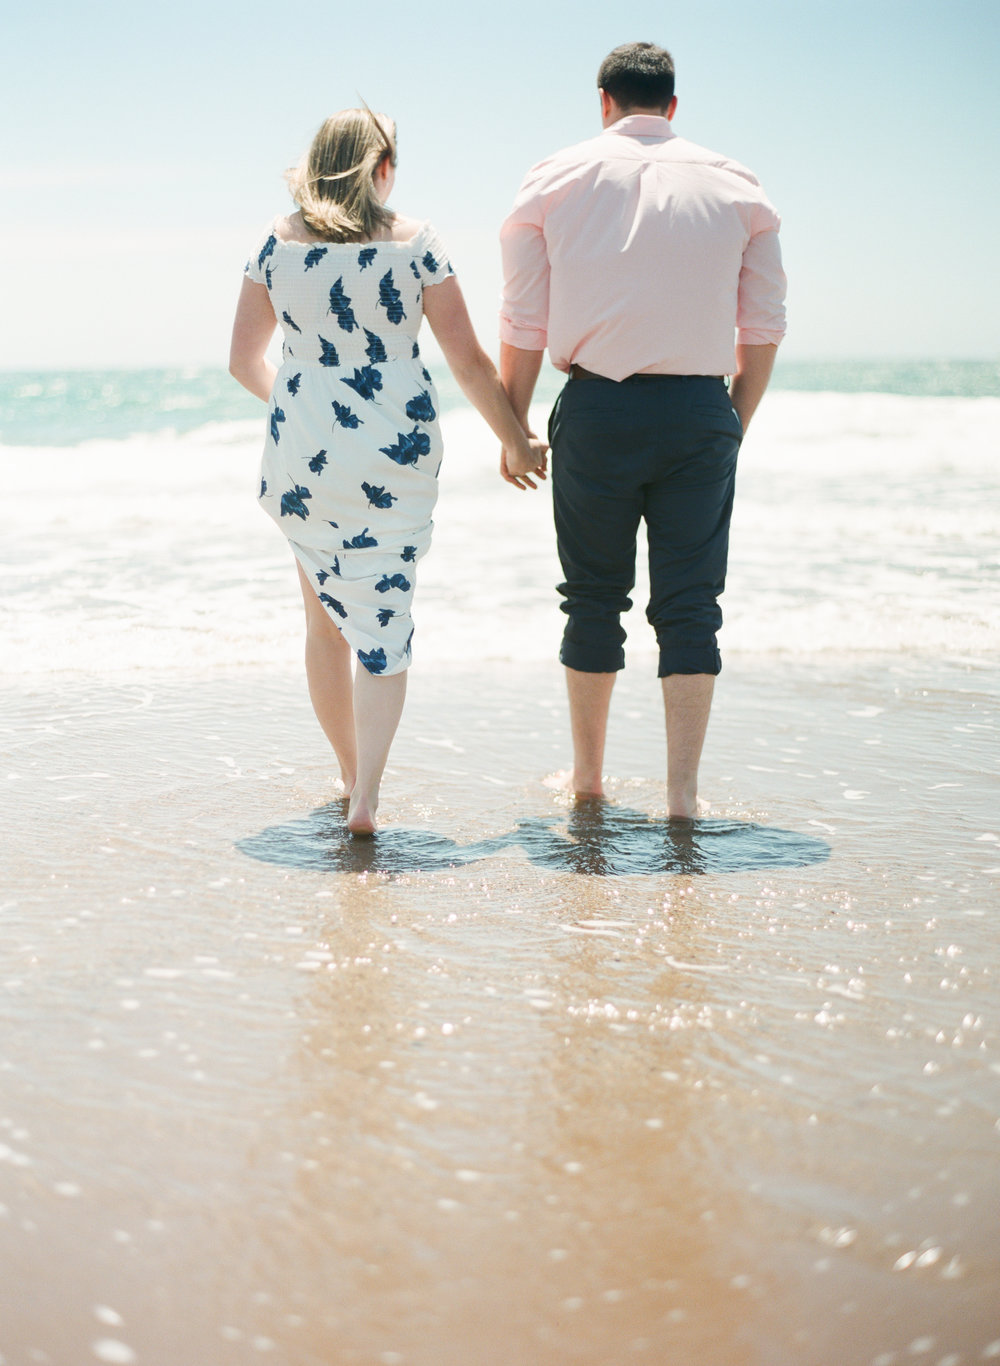 Jacqueline Anne Photography-Melissa and Daniel - Contax 645 - Beach Full Sun-5.jpg